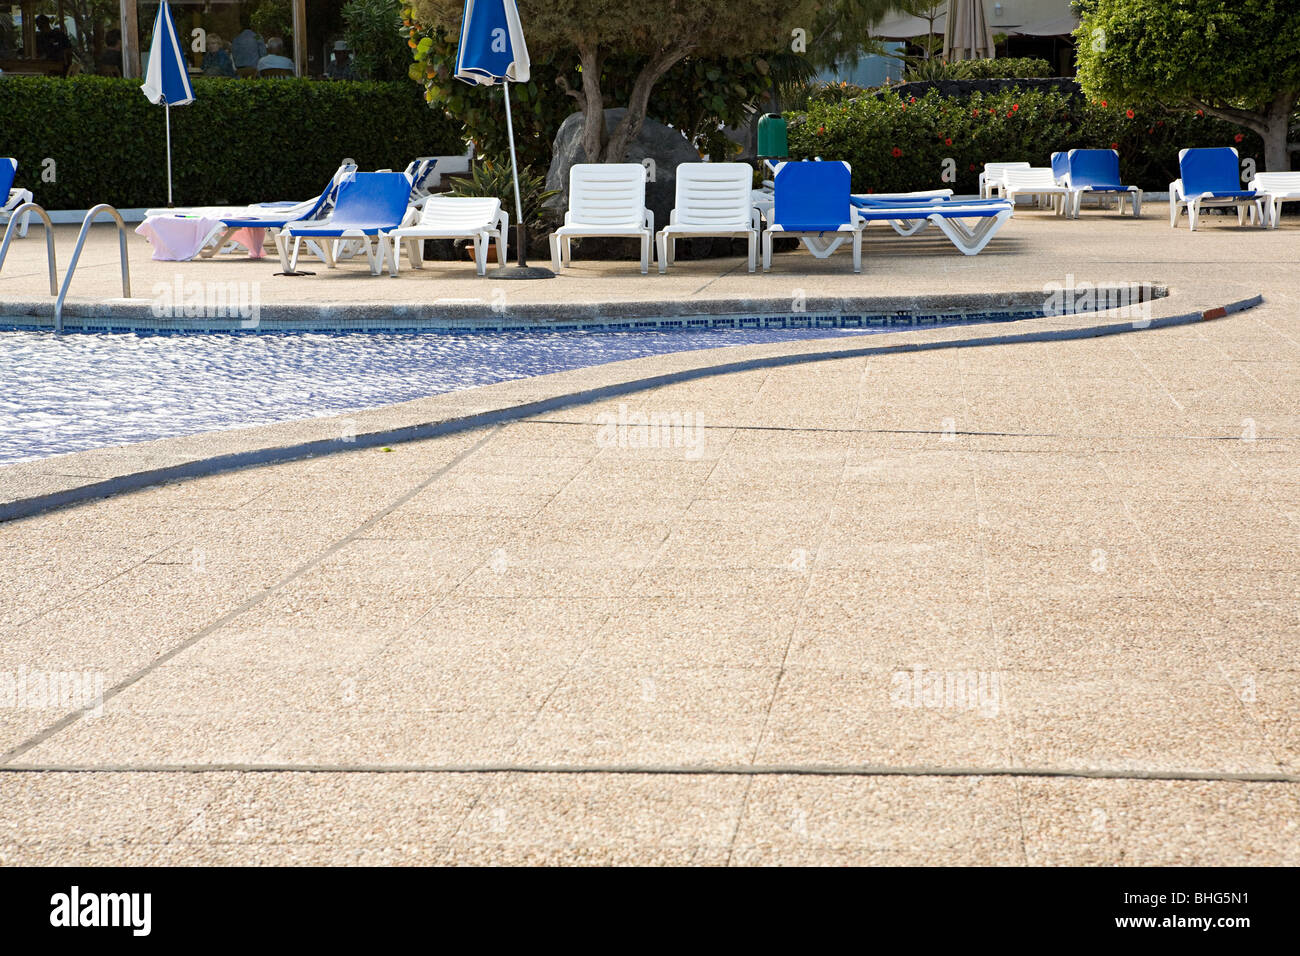 Sun loungers beside a swimming pool - Stock Image